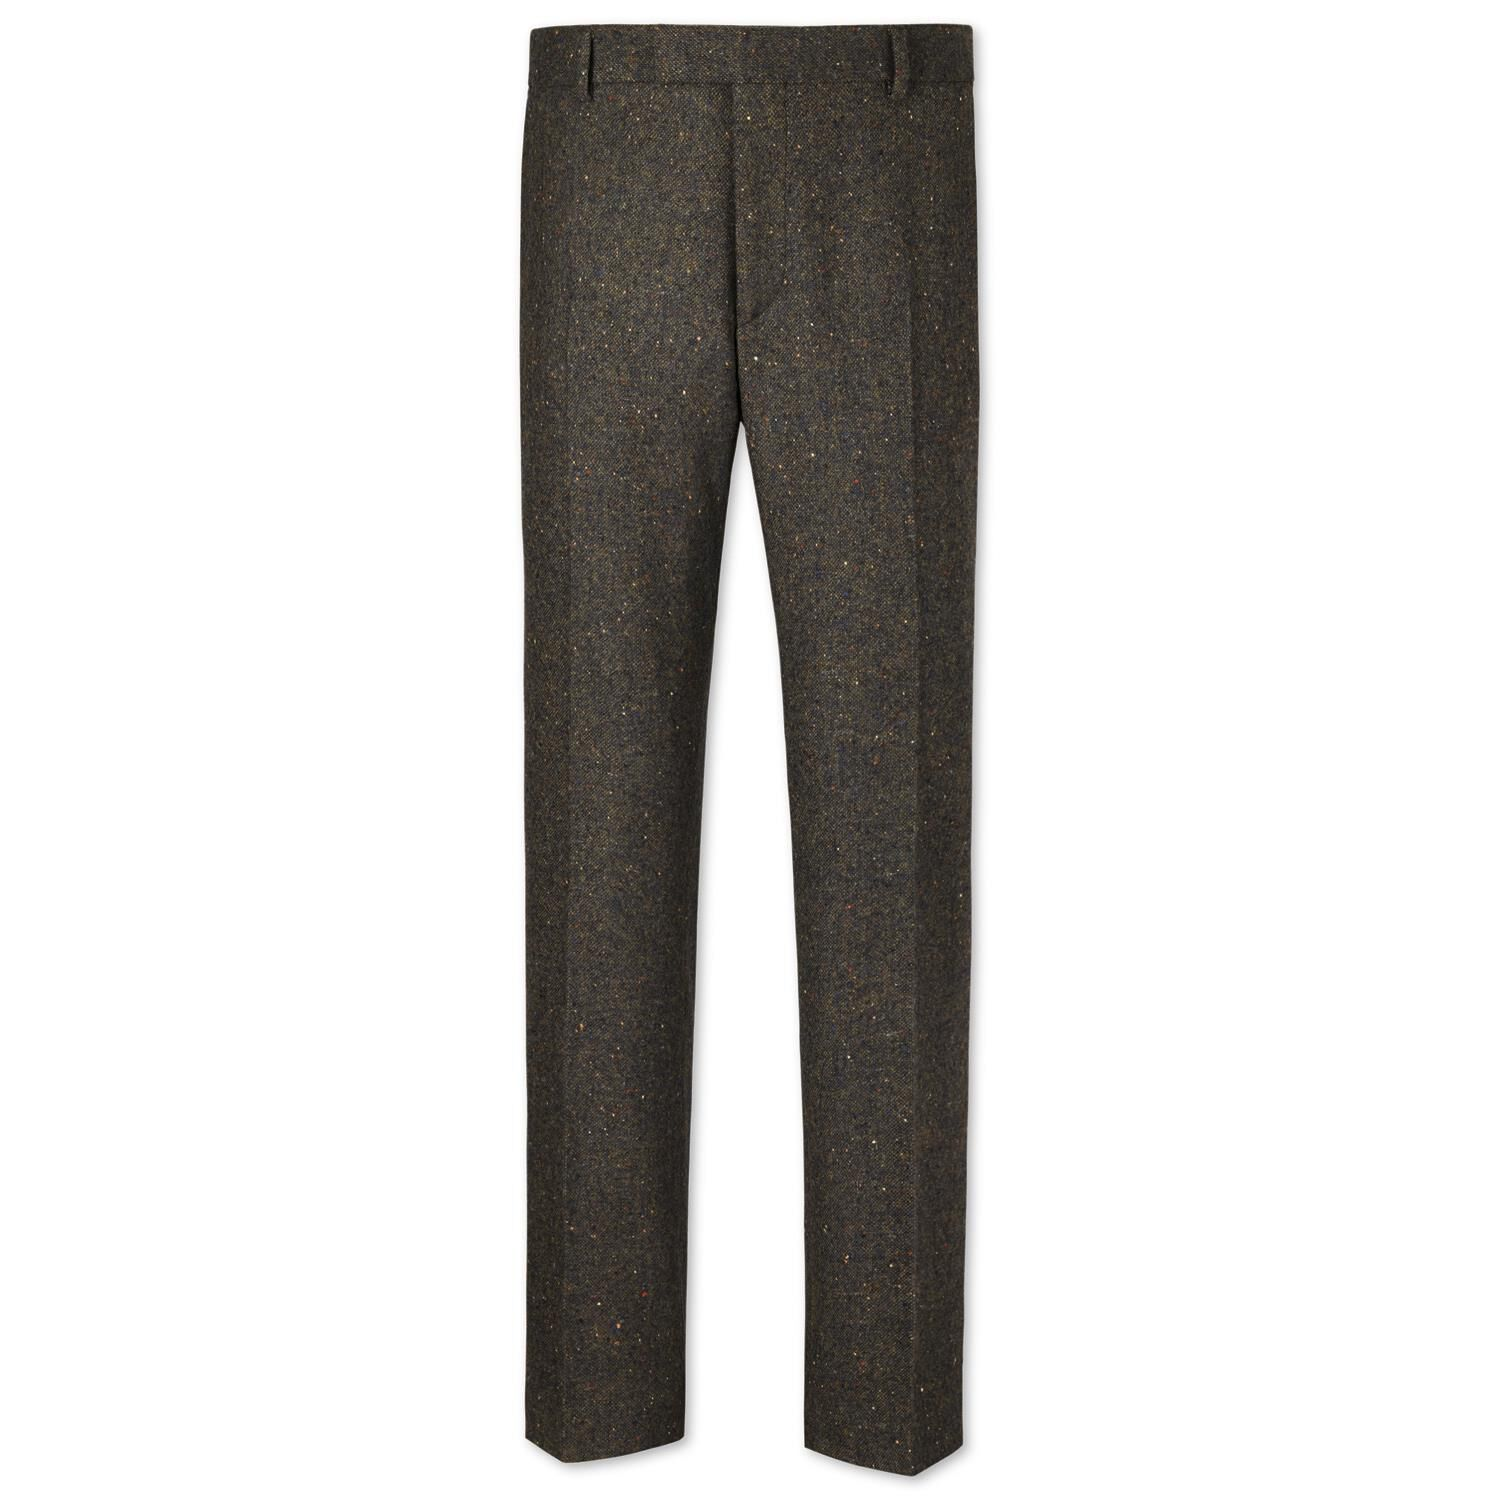 Green Slim Fit Donegal Tweed Trousers Size W38 L32 by Charles Tyrwhitt